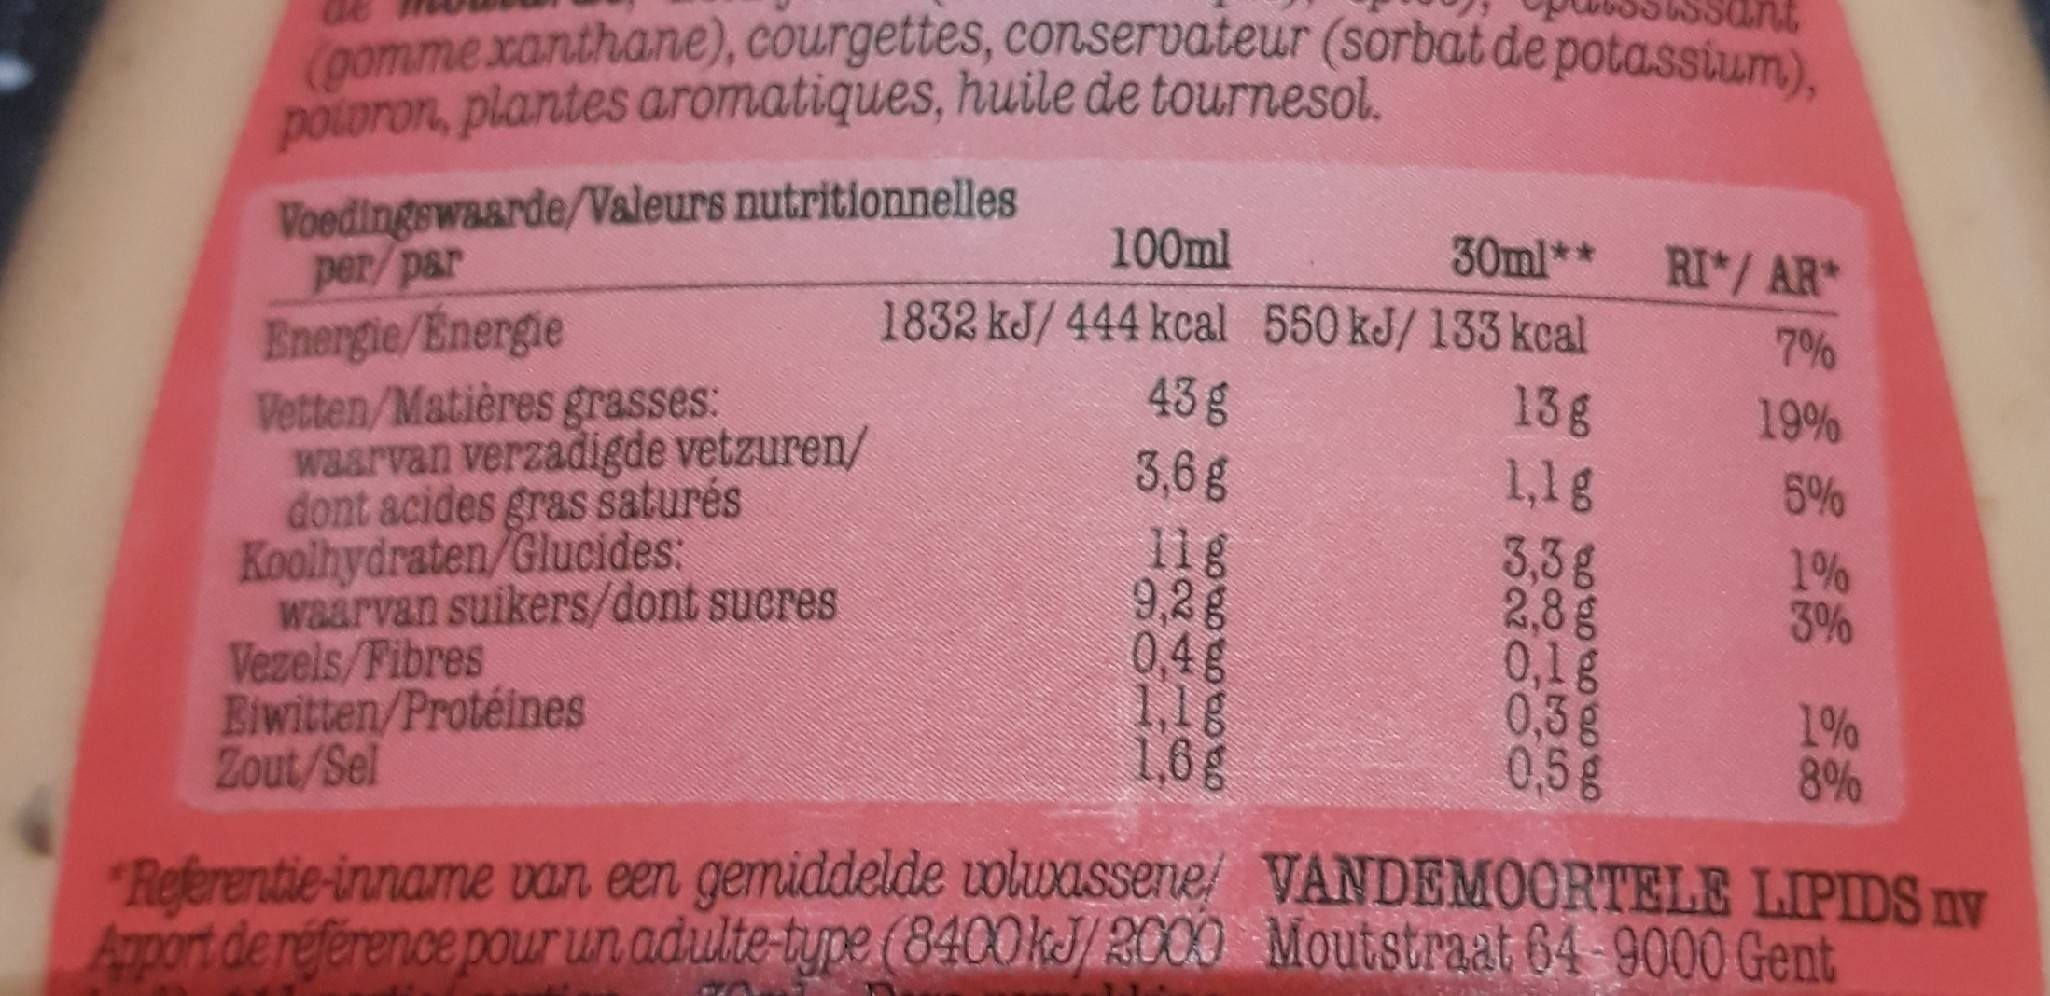 Vinaigrette Thousand Islands Vandemoortele - Nutrition facts - fr